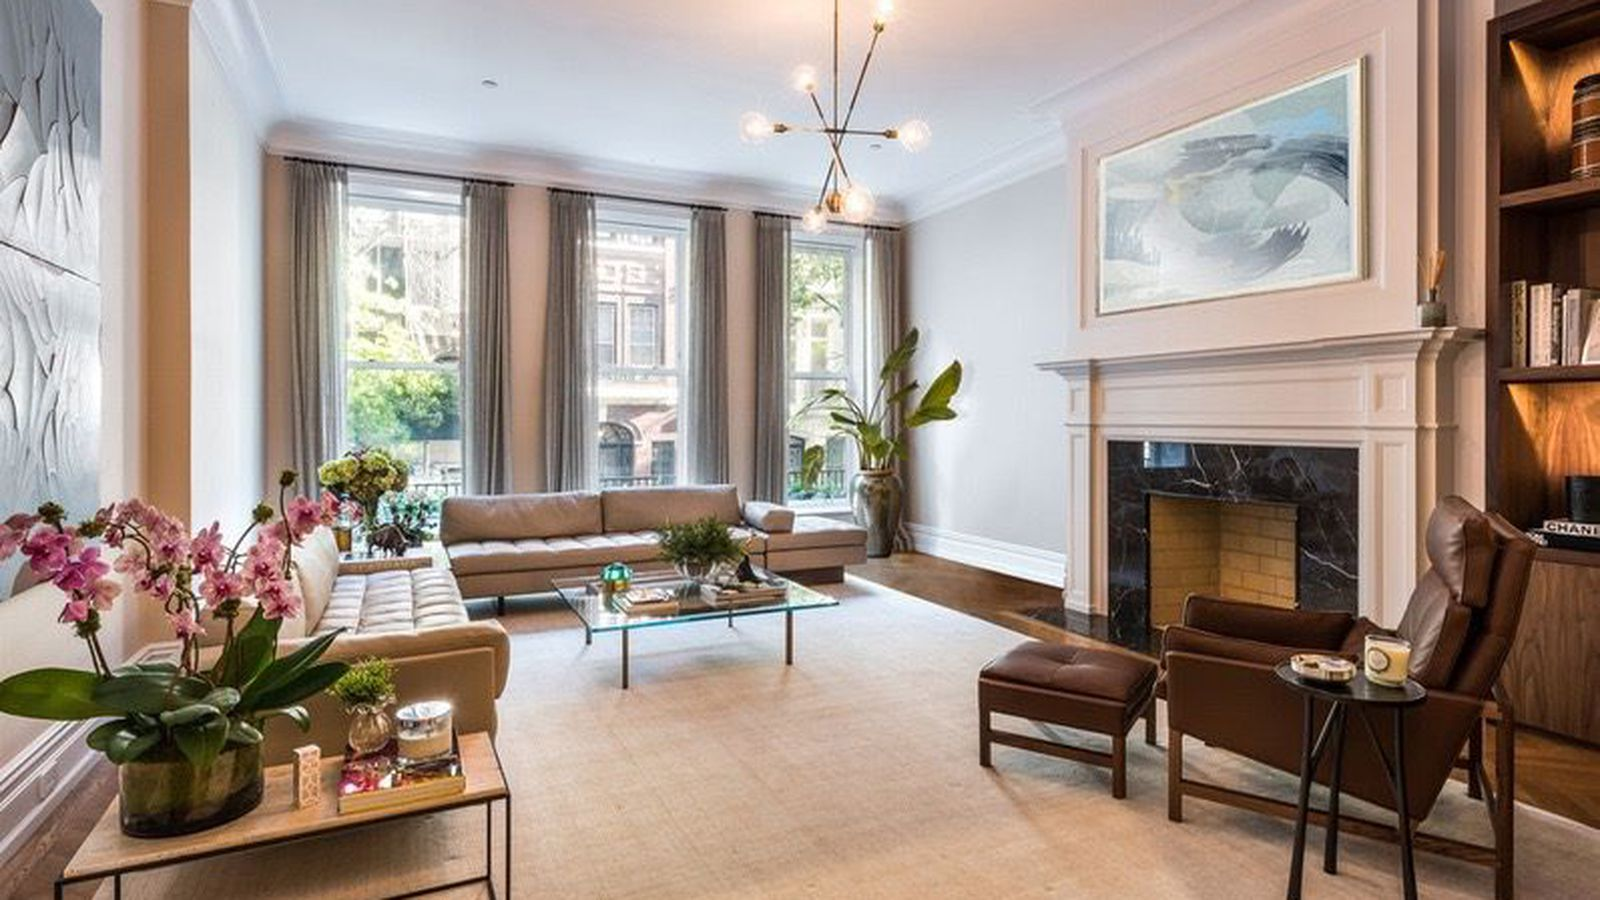 Upper east side townhouse with roof garden astroturf for Upper east side townhouse for rent